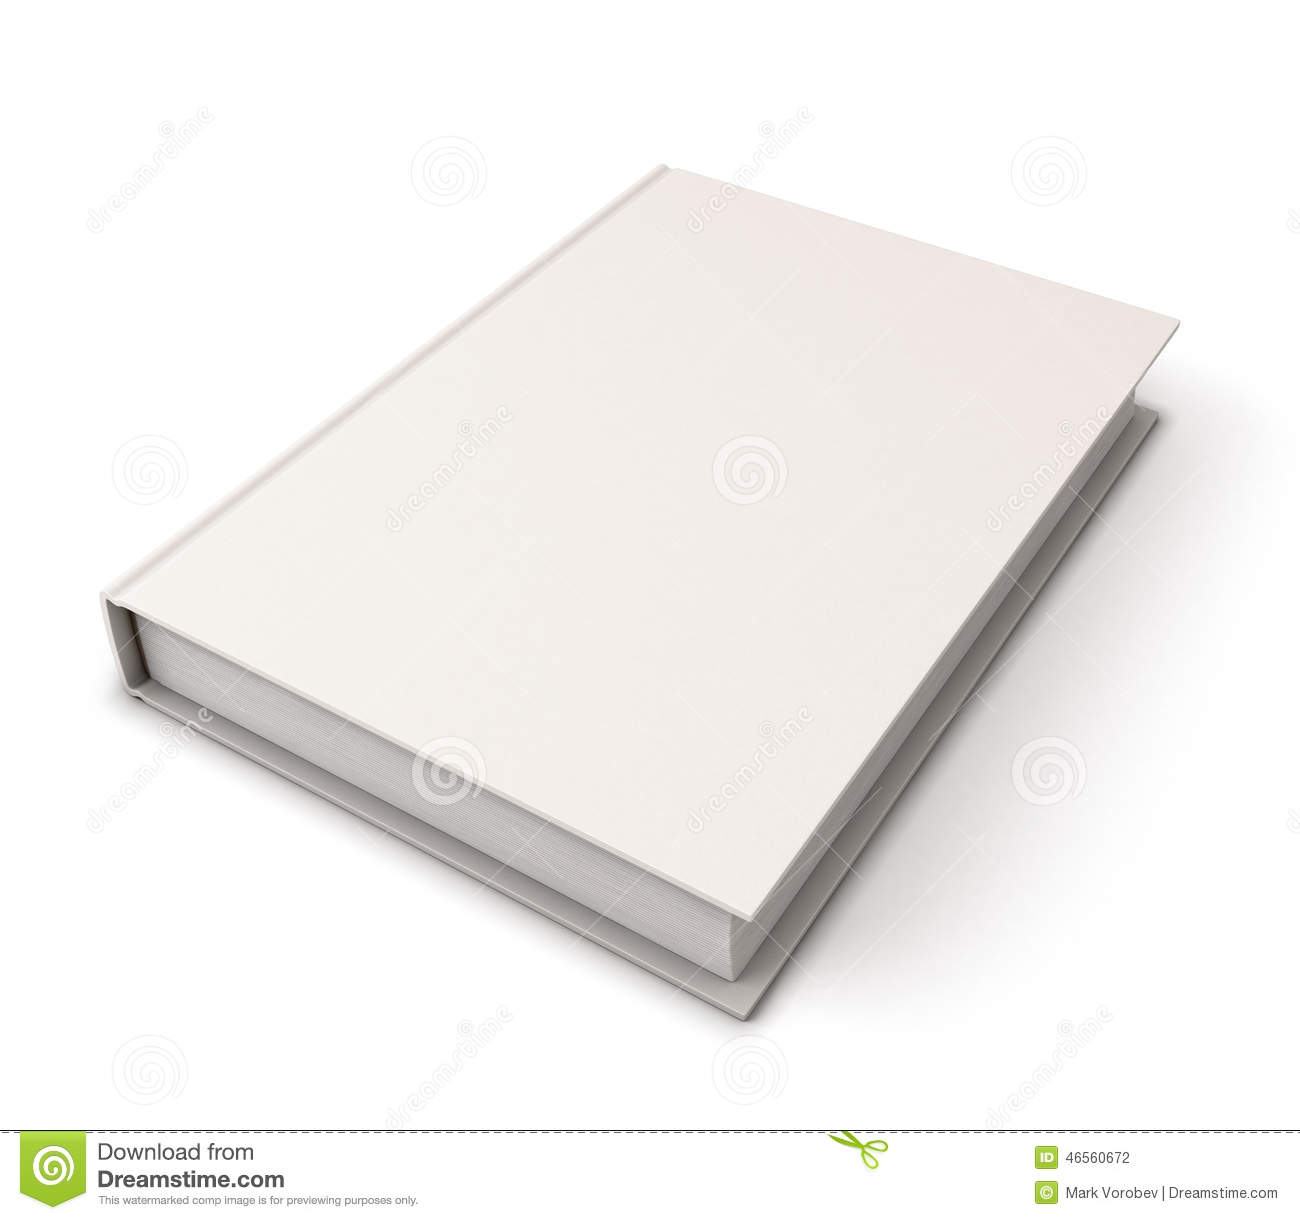 Blank Book Cover Template Stock Illustration - Image: 46560672